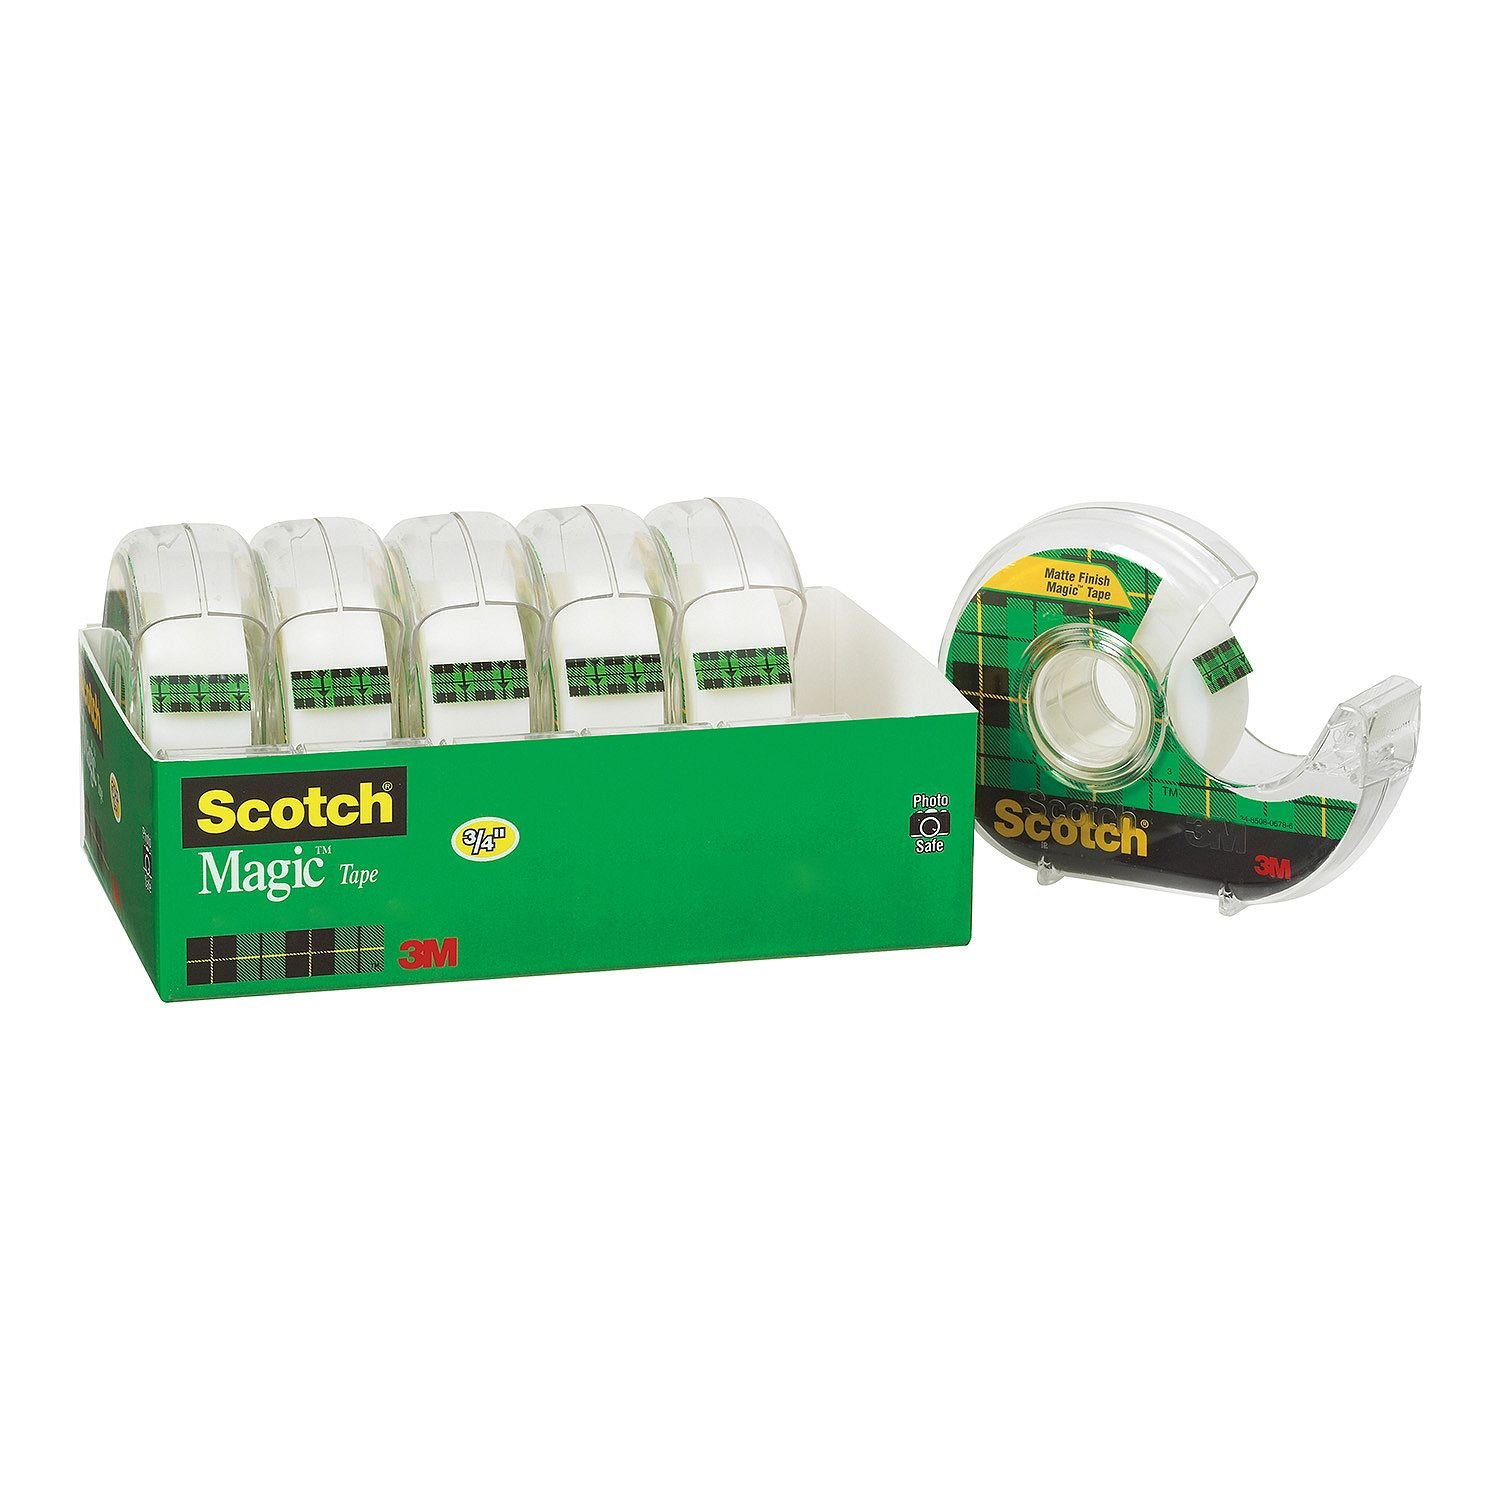 "Scotch Magic Tape w/ Refillable Dispenser, ¾"" x 850"" Each, 5100 Inches Total, 6 Pack"